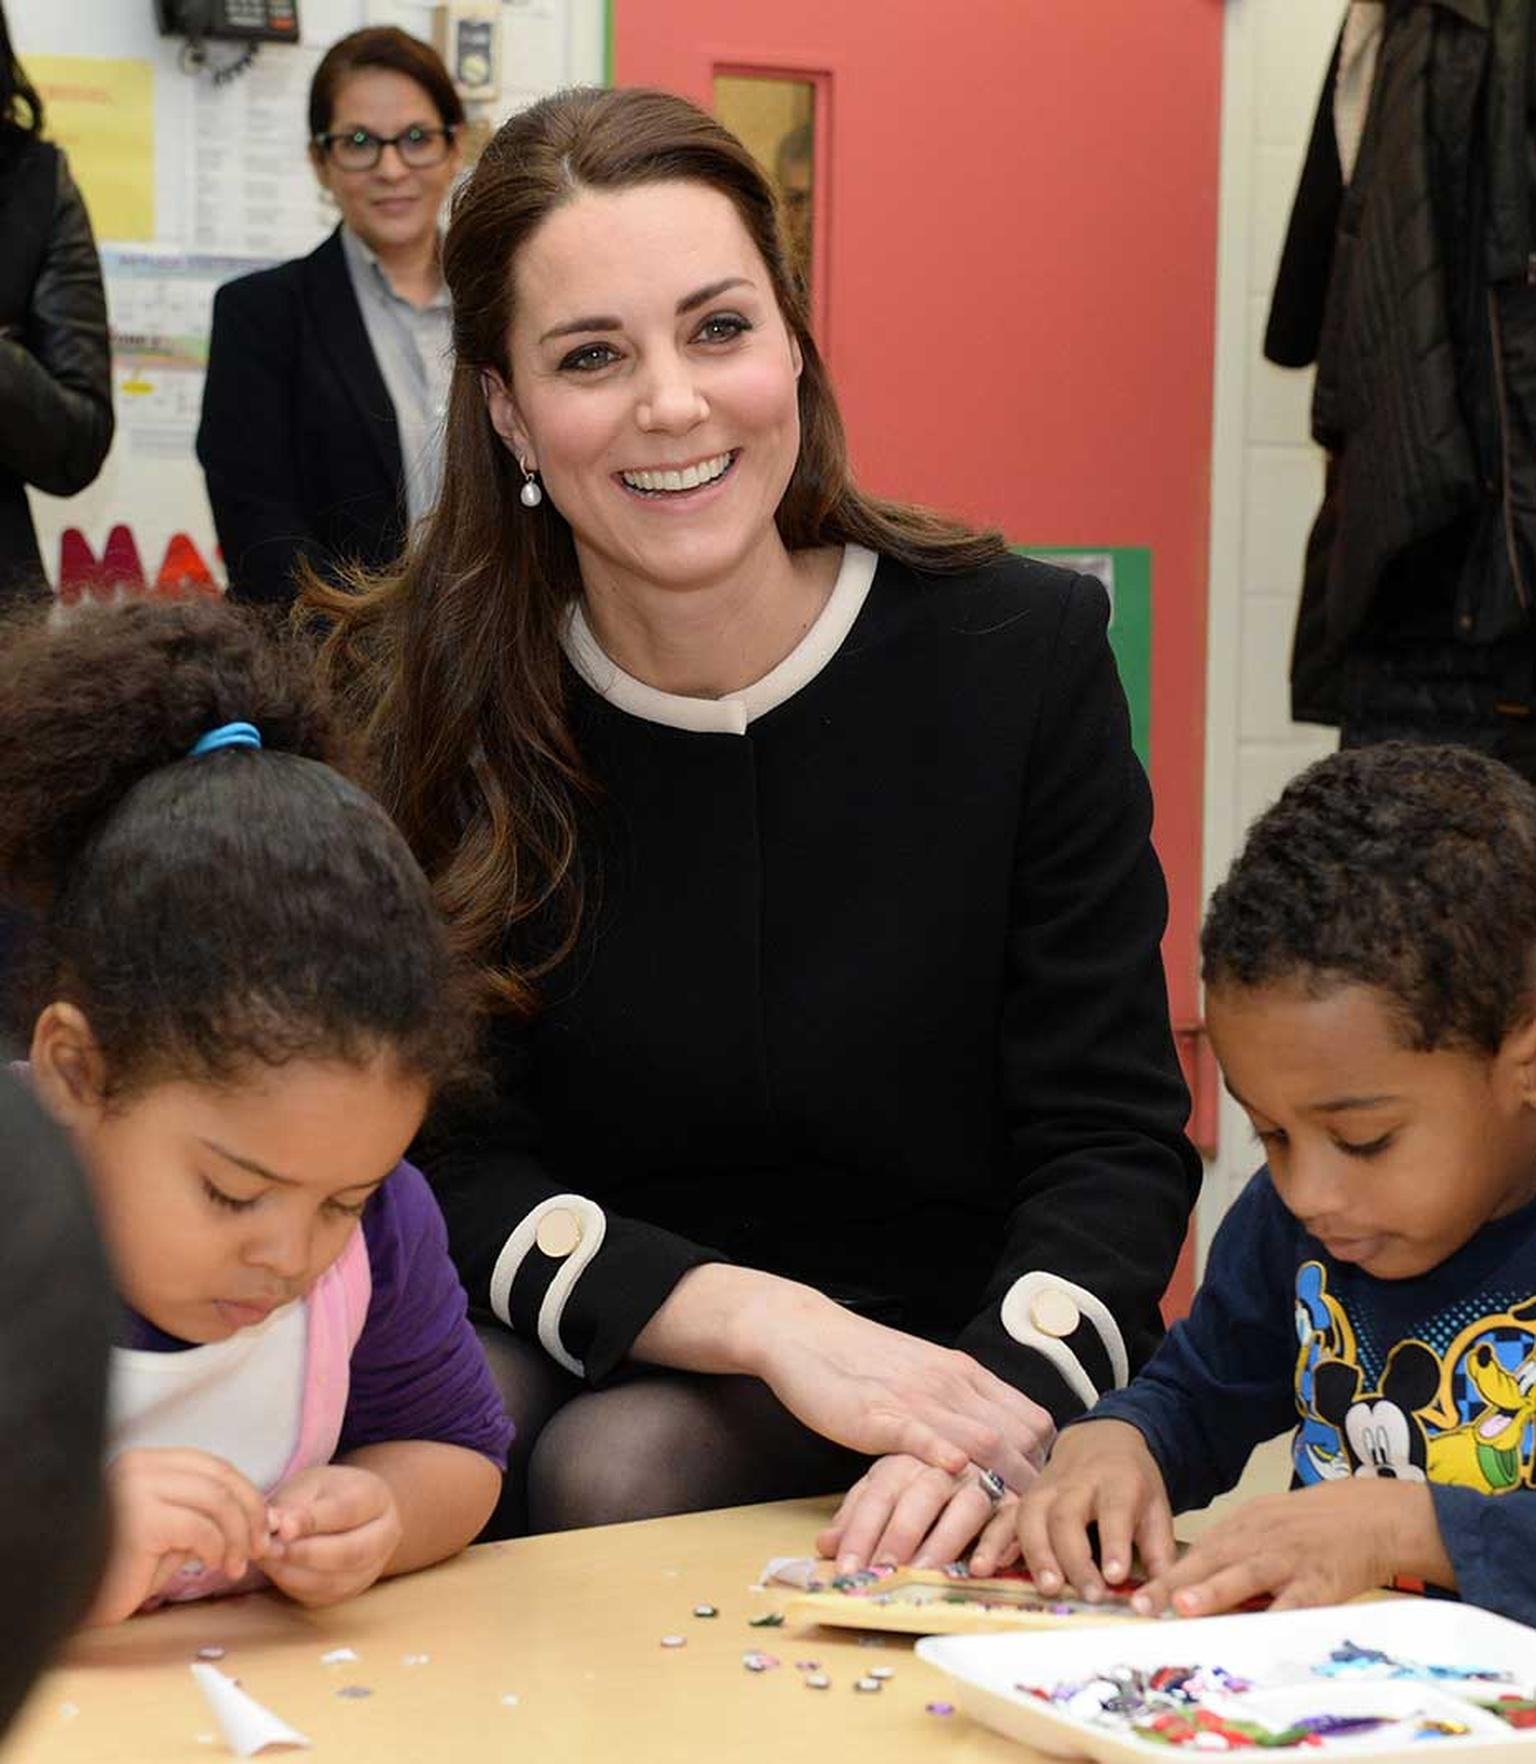 Kate Middleton wore a pair of familiar Annoushka pearl earrings during a visit to Northside Center for Child Development in Harlem, New York.